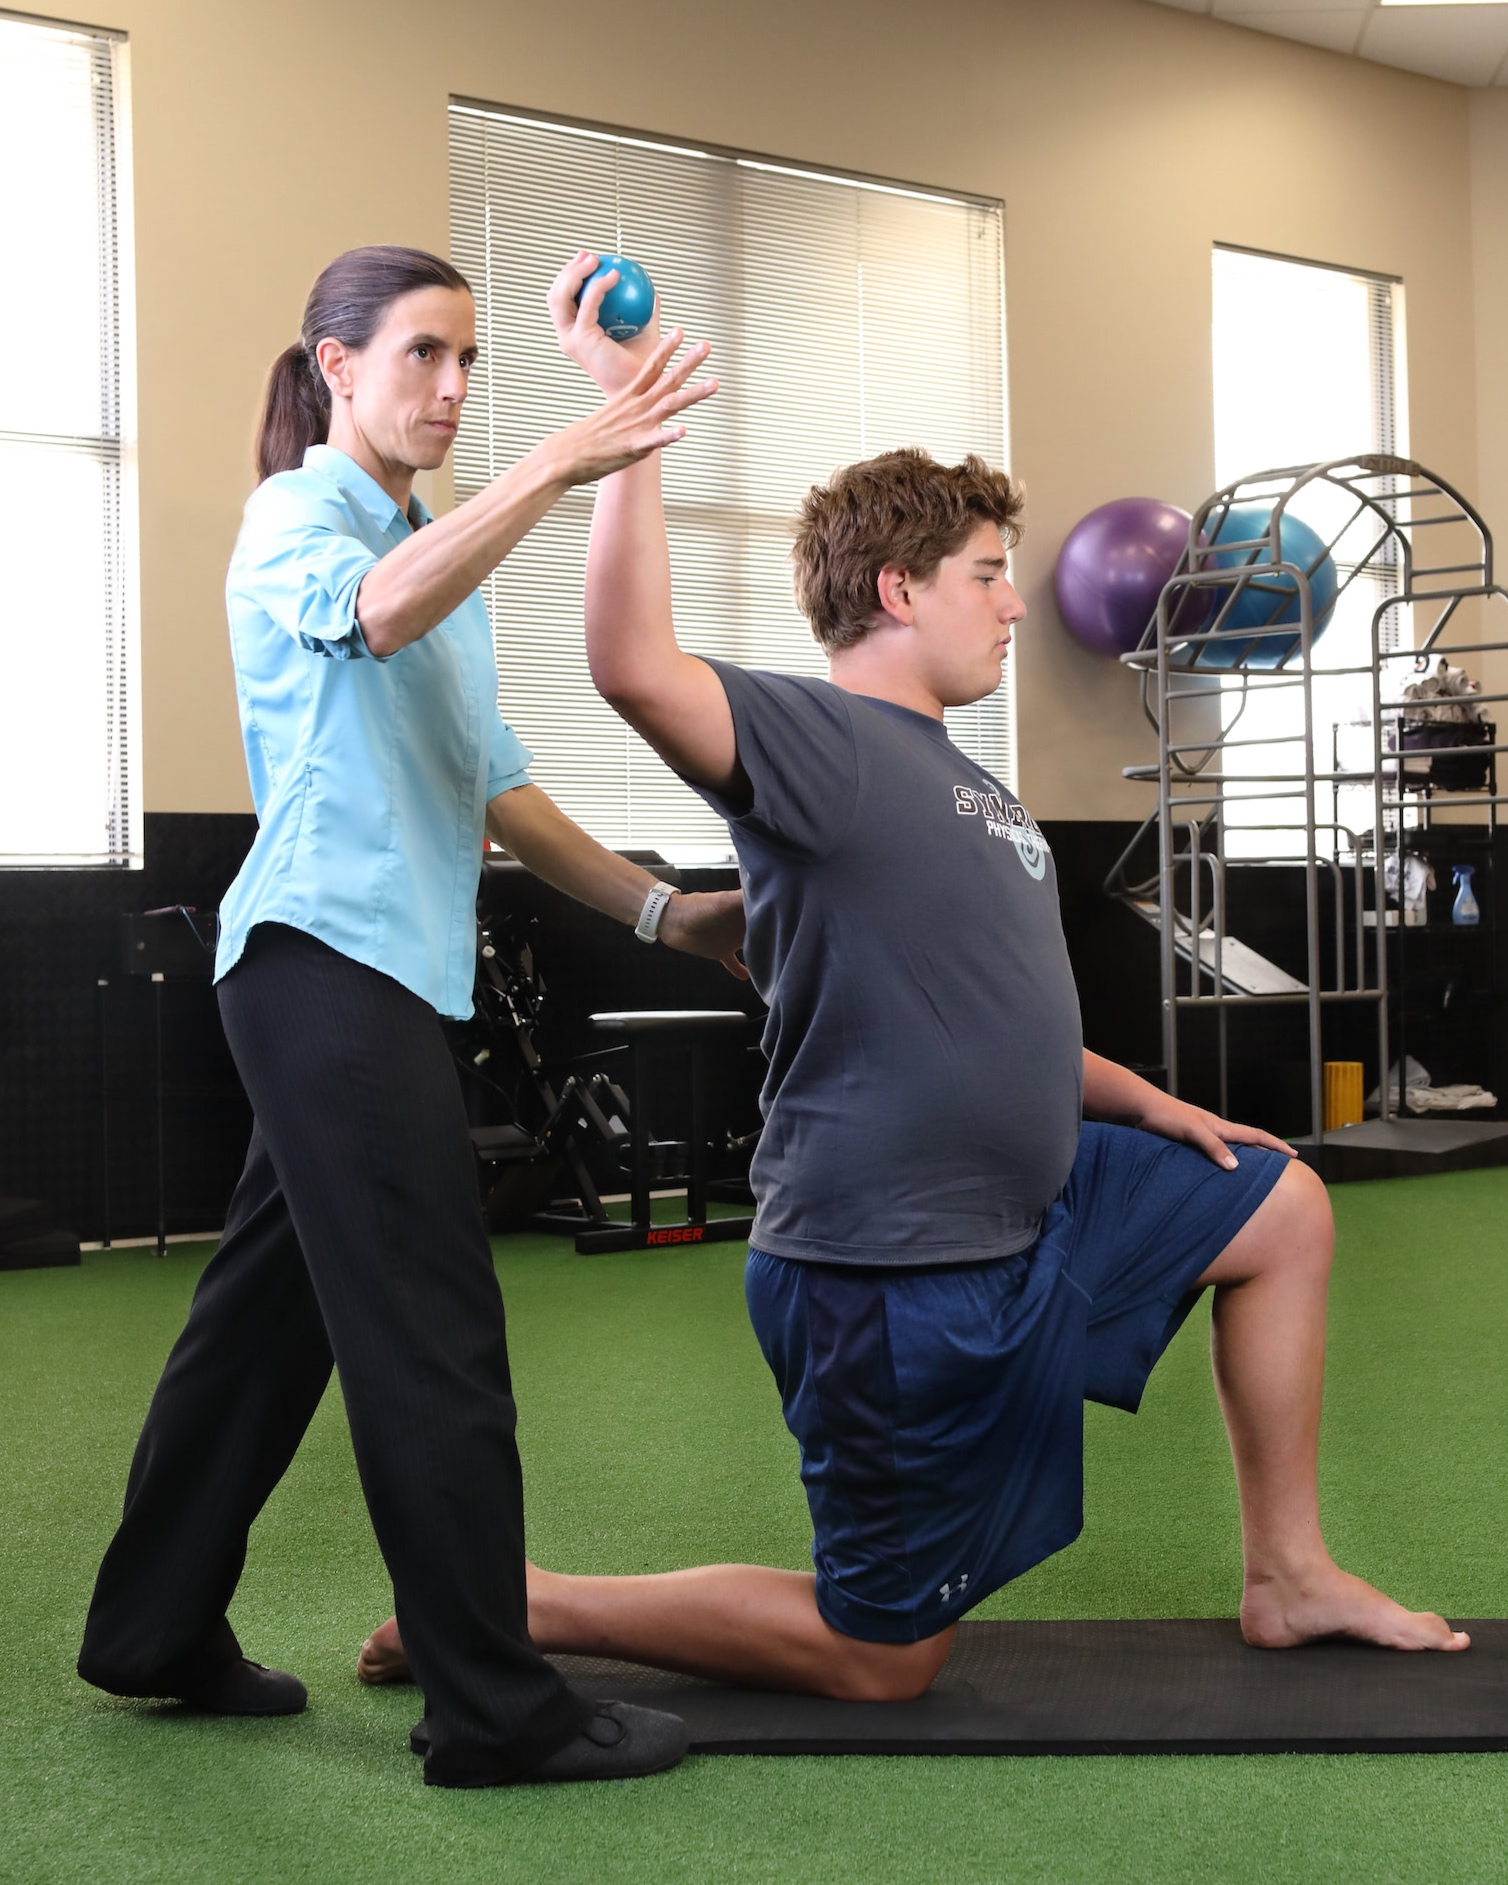 Orthopedic Physical Therapy - At SynergiePT, we combine our trained eyes with technology to identify specific imbalances and risks for injury and uncover the cause of a patient's loss in power, strength and/or speed. Our therapists incorporate focused biomechanical analysis and neuromuscular retraining for recovery and prevention of re-injury.We don't stop treatment at the tissue level — we help train the brain to fix the mechanics during everyday functional movements. Whether it is running, dancing, swinging a tennis racket, or throwing a water polo ball, we'll pinpoint the movement patterns causing your symptoms and get you back to the activities you love doing, pain-free.